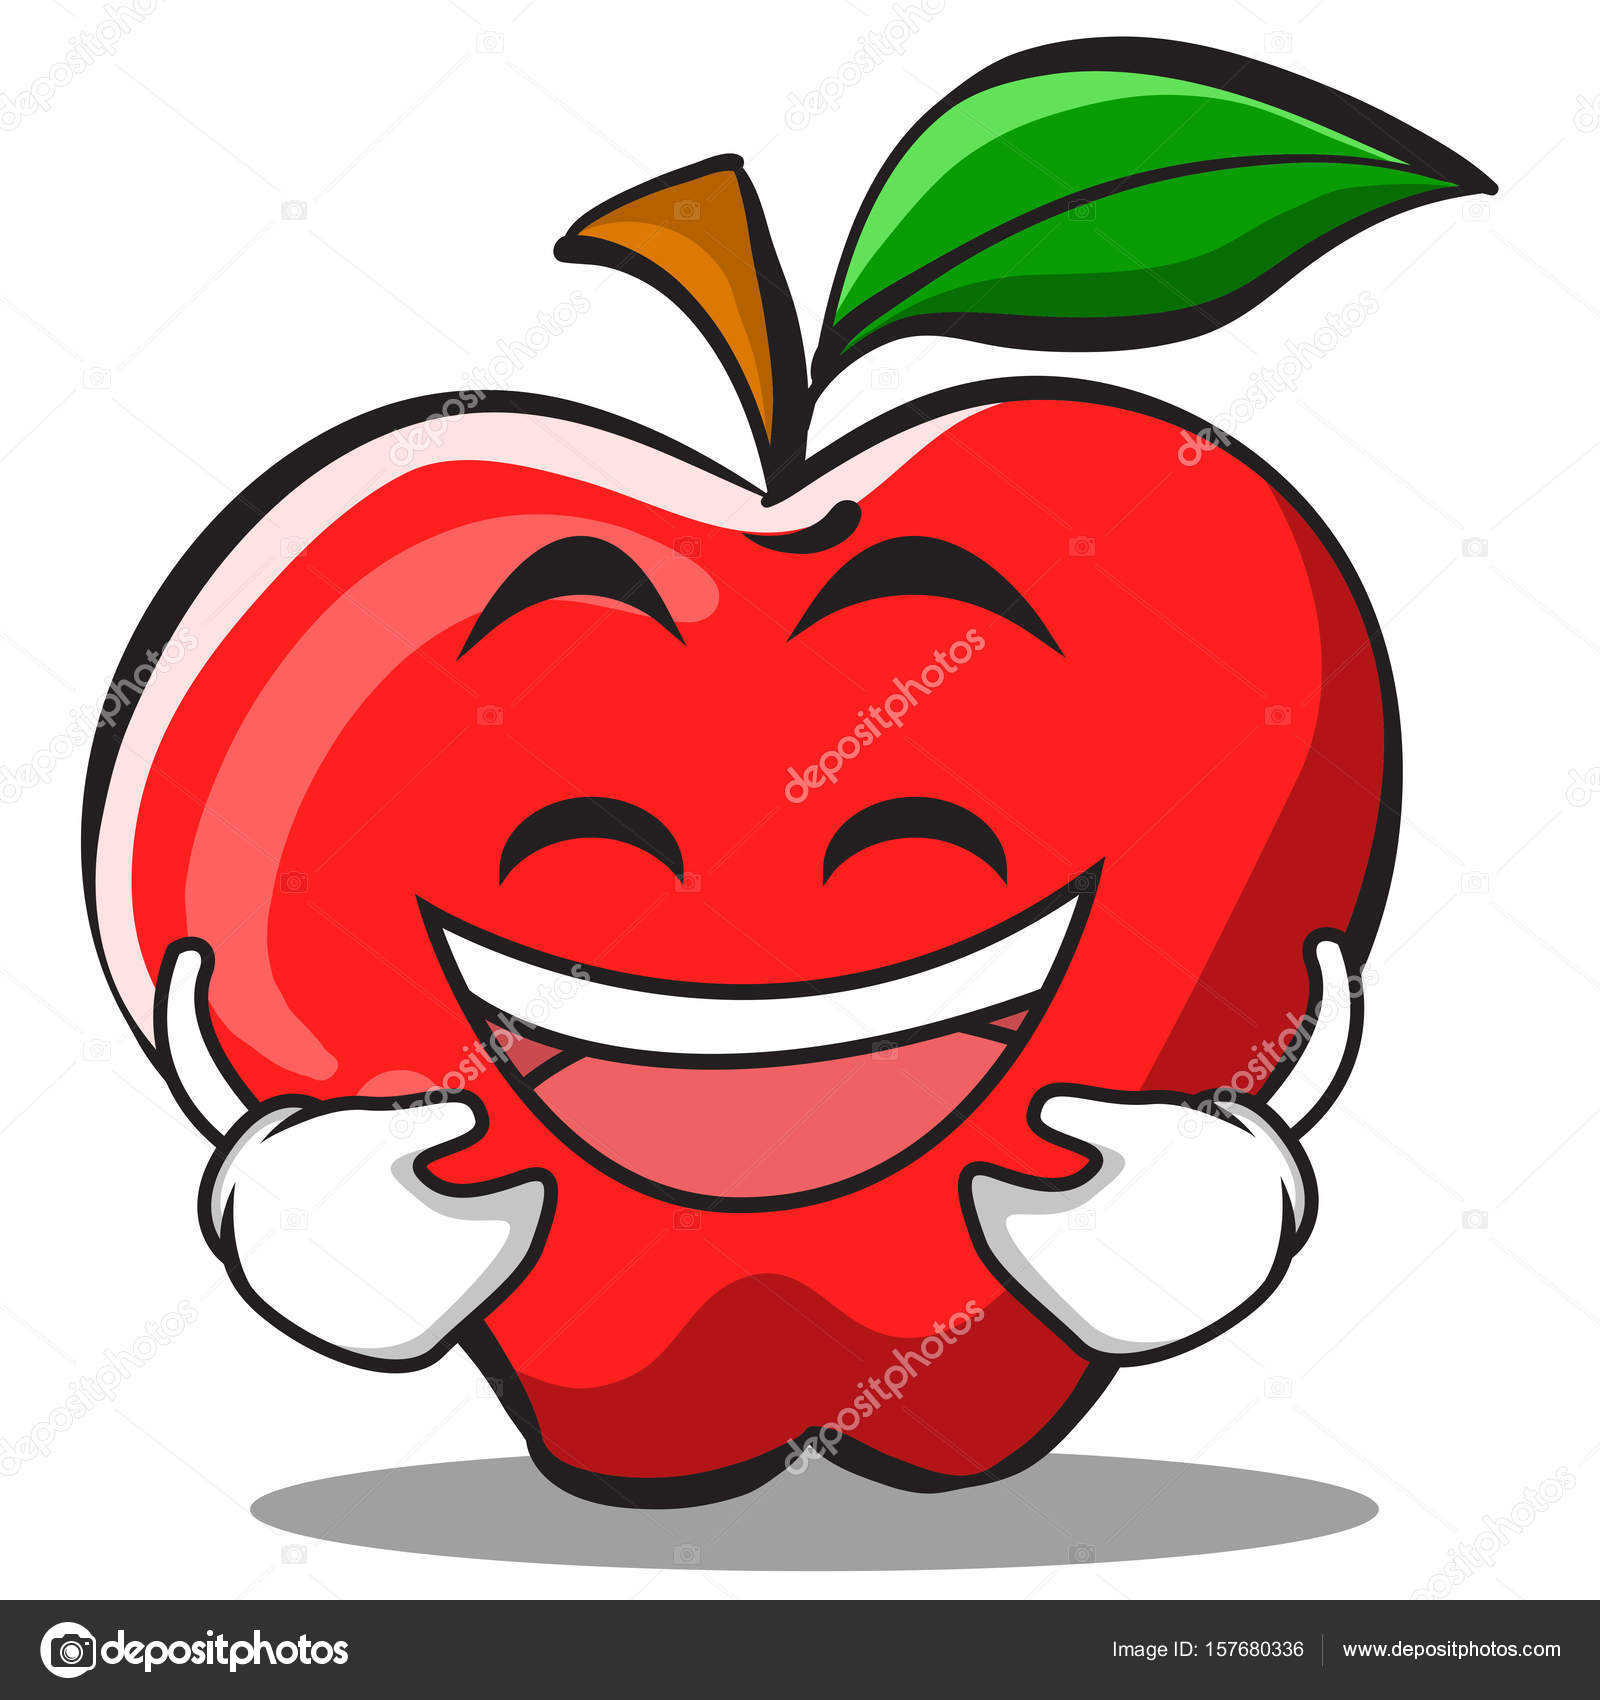 Cartoon Character Design Price : Laughing apple cartoon character design — stock vector